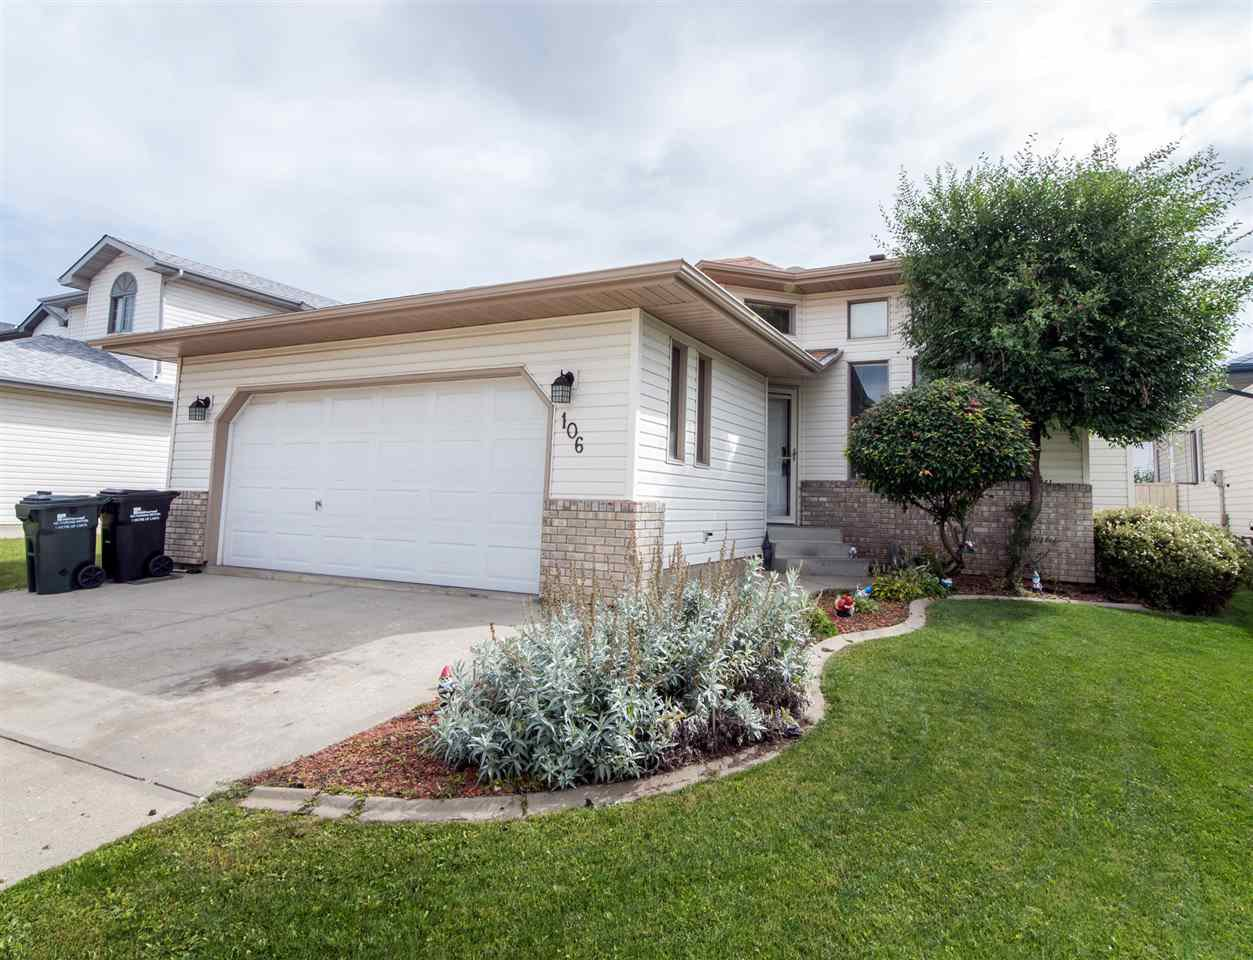 Main Photo: 106 CATALINA Drive: Sherwood Park House for sale : MLS®# E4169214